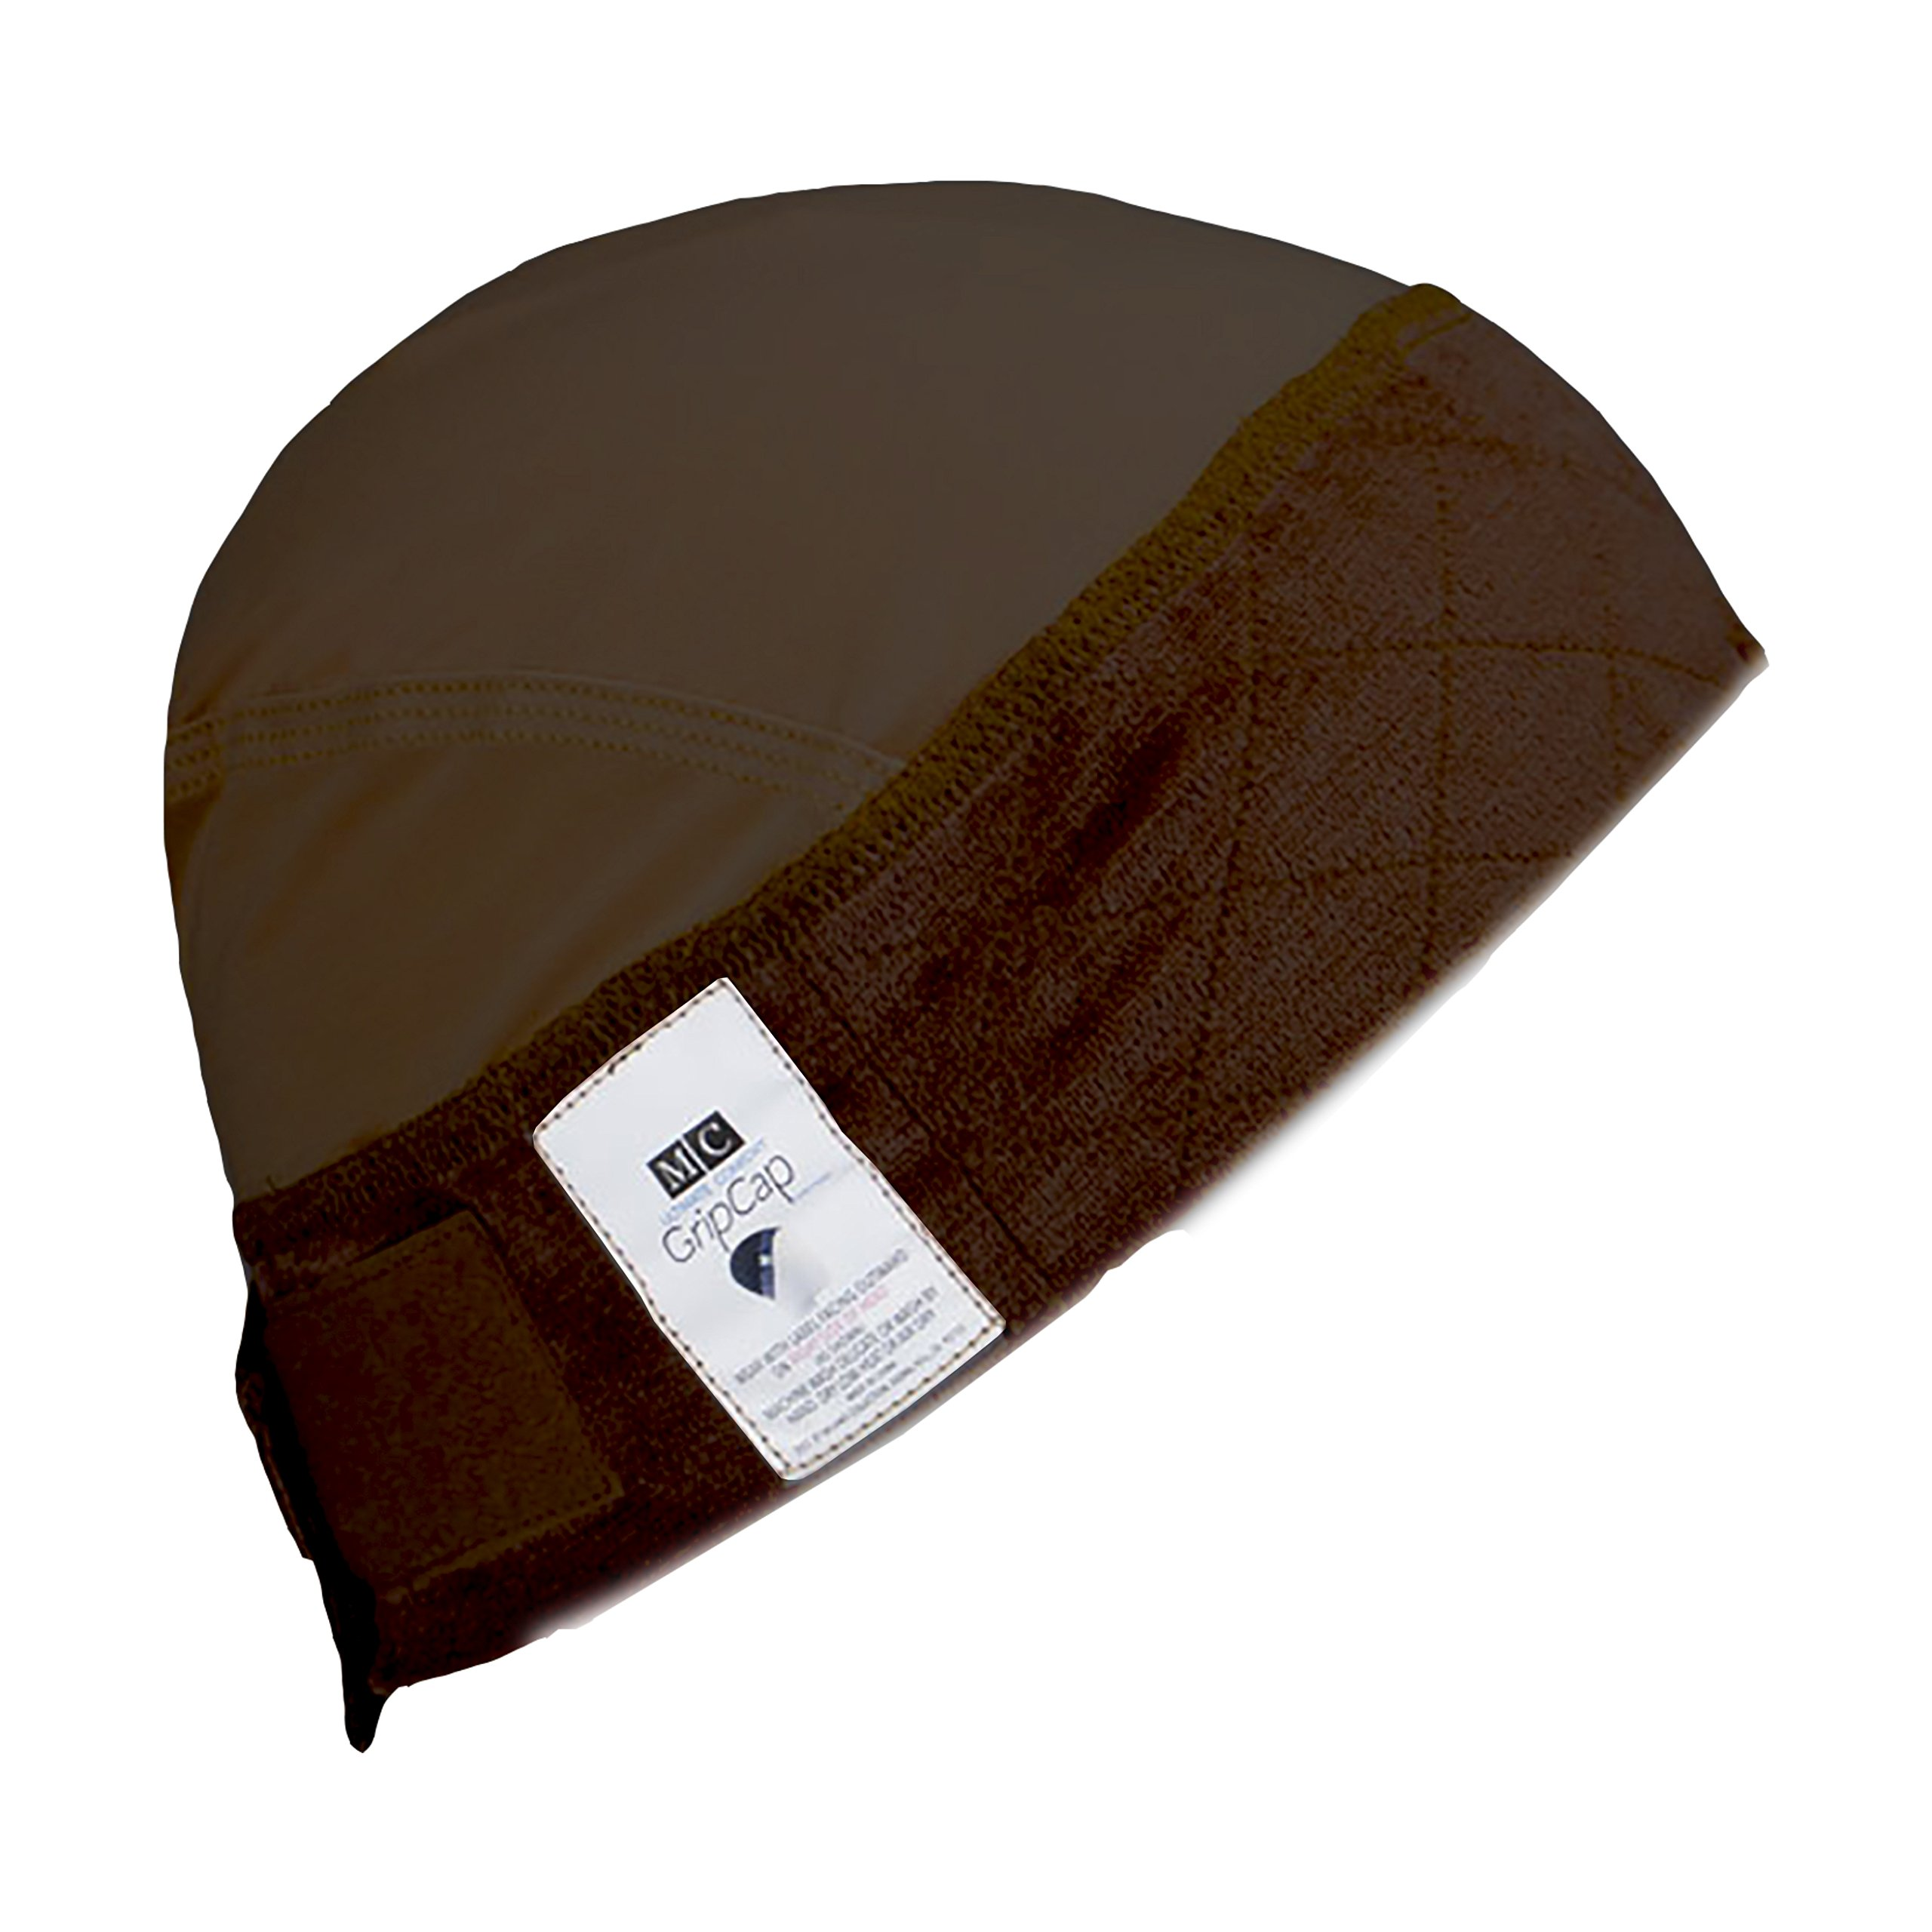 Milano Collection GripCap All in One WiGrip Comfort Band & Wig Cap in Brown by MILANO COLLECTION (Image #2)